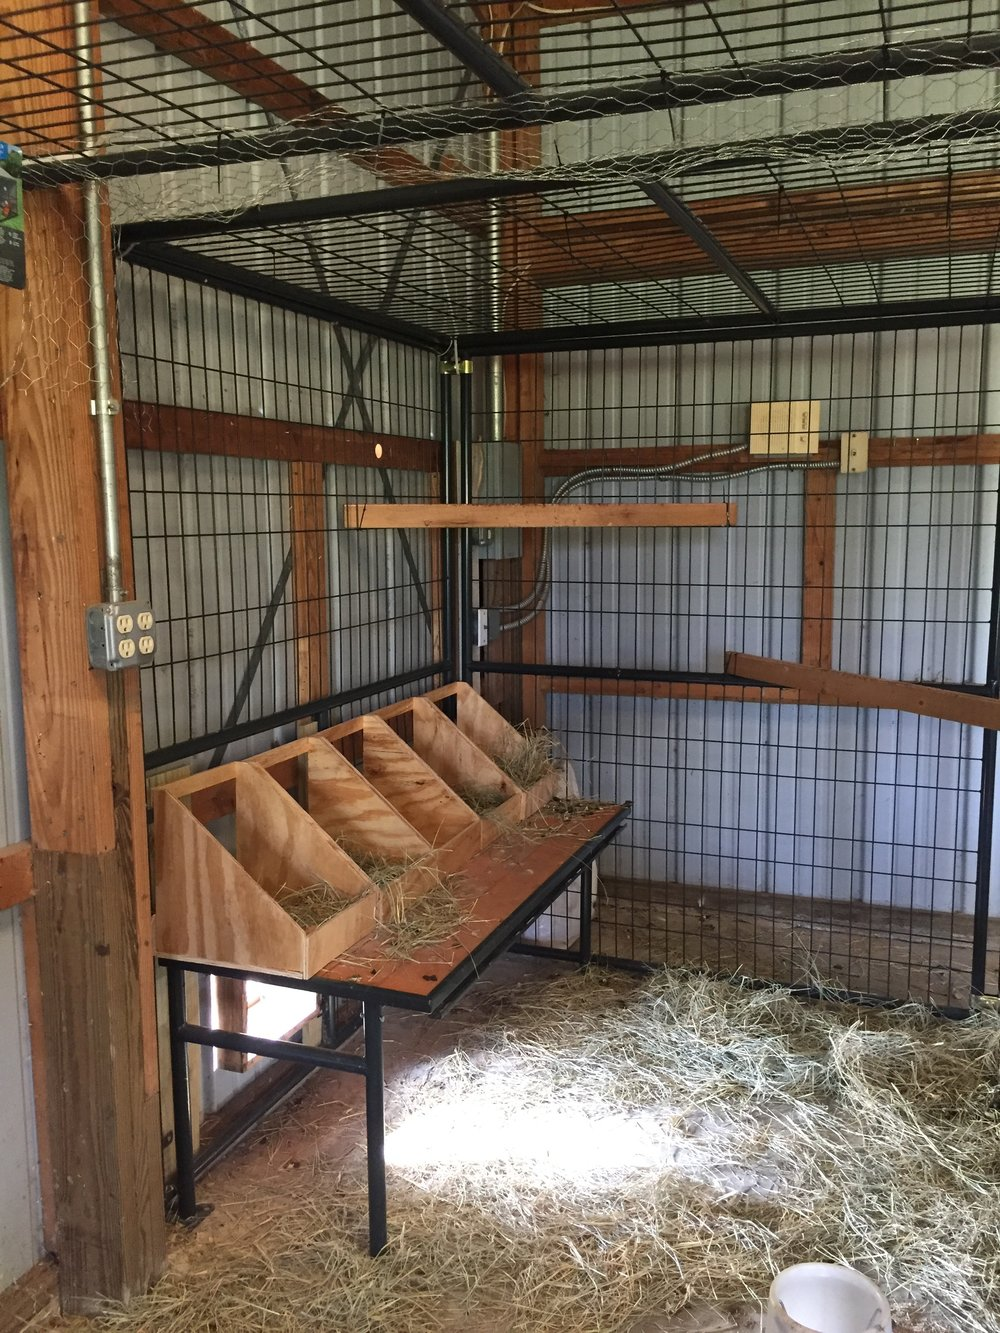 Chickens new nesting boxes.